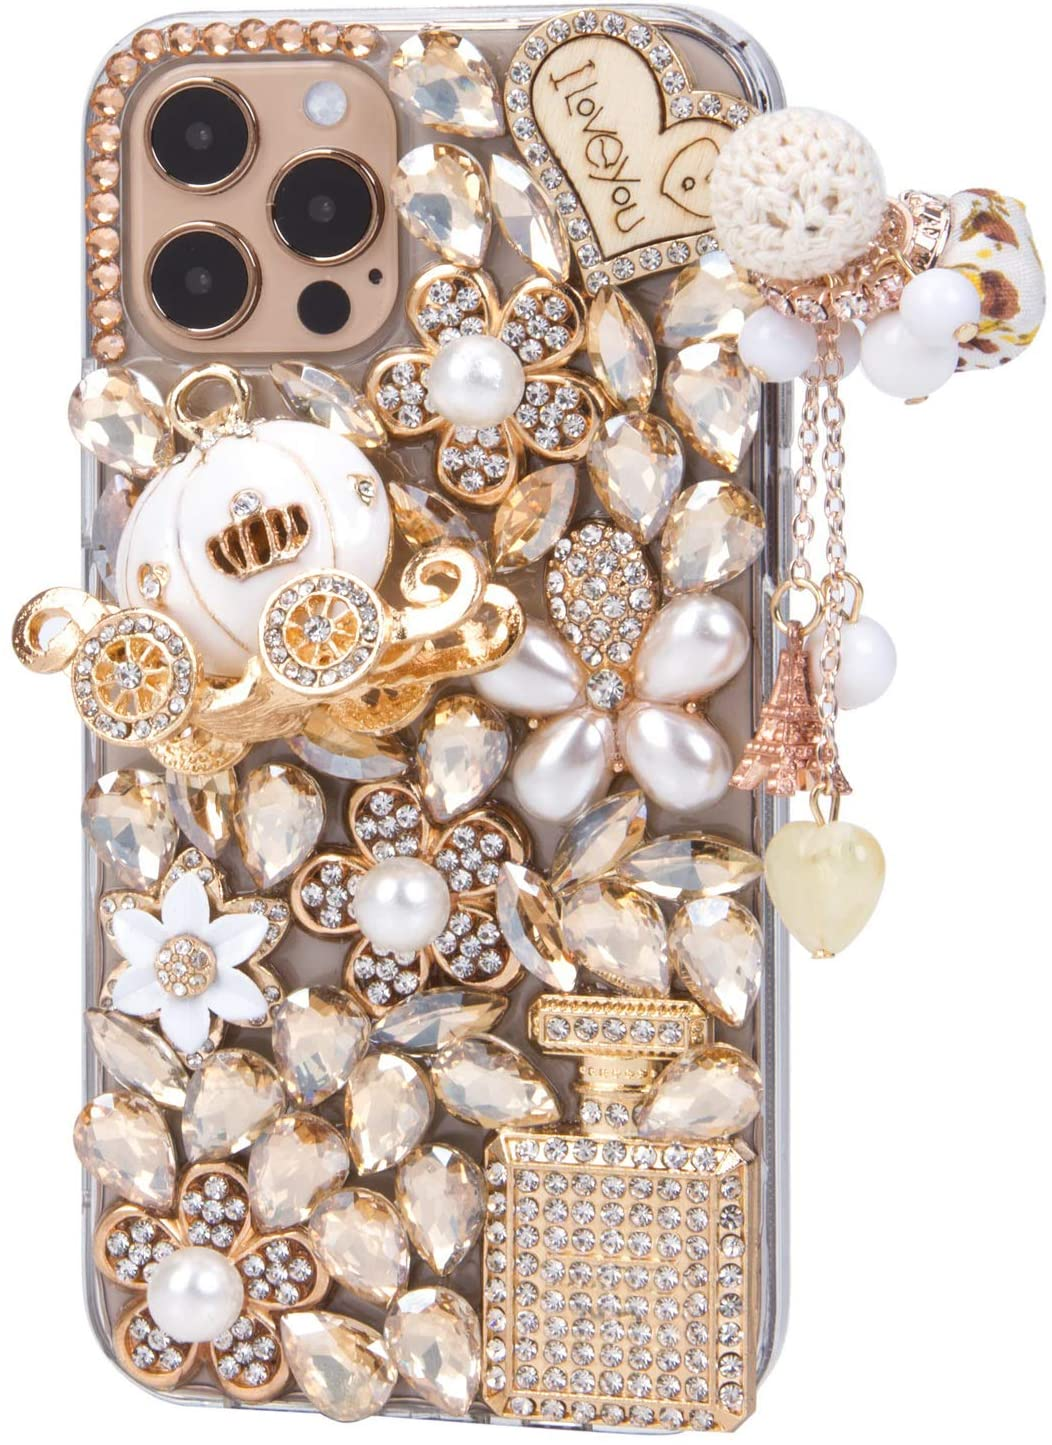 iFiLOVE for iPhone 13 Pro Max Bling Case, Girls Women 3D Luxury Sparkle Glitter Diamond Crystal Rhinestone Pumpkin Car Charm Pendant Protective Case Cover for iPhone 13 Pro Max 6.7 inch (Champagne)